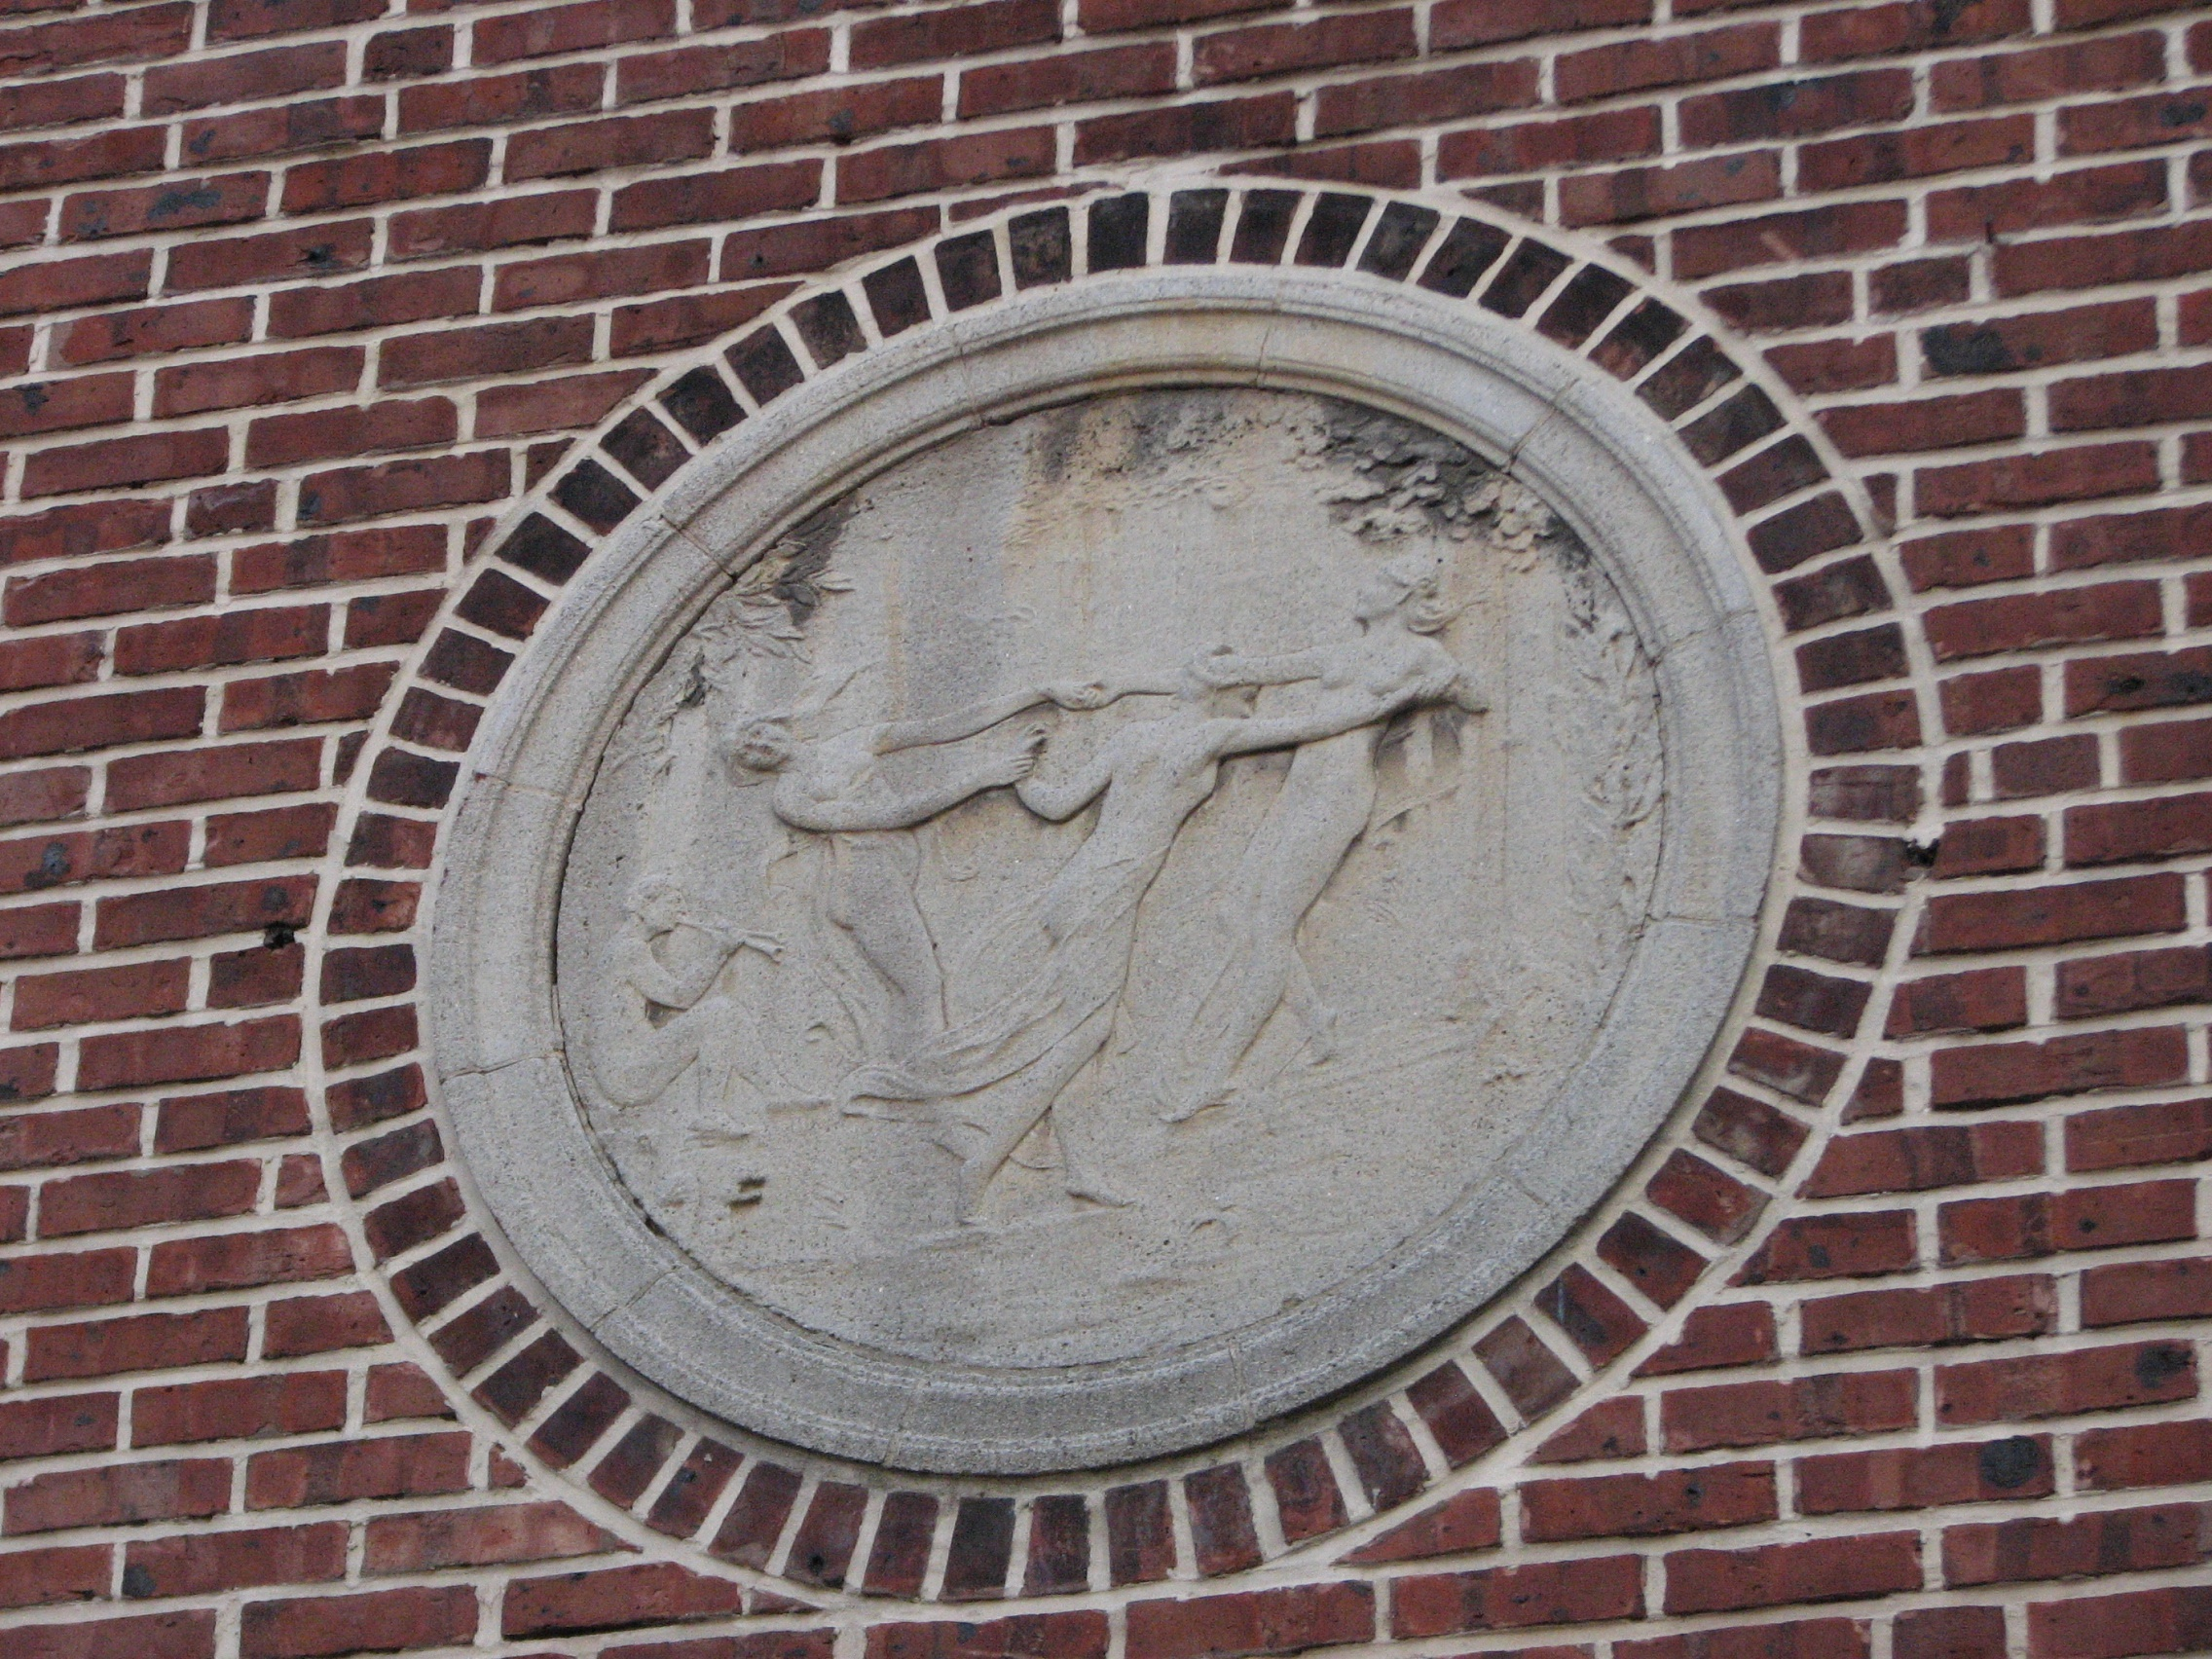 The original design included theatrical bas reliefs on the front of the building.